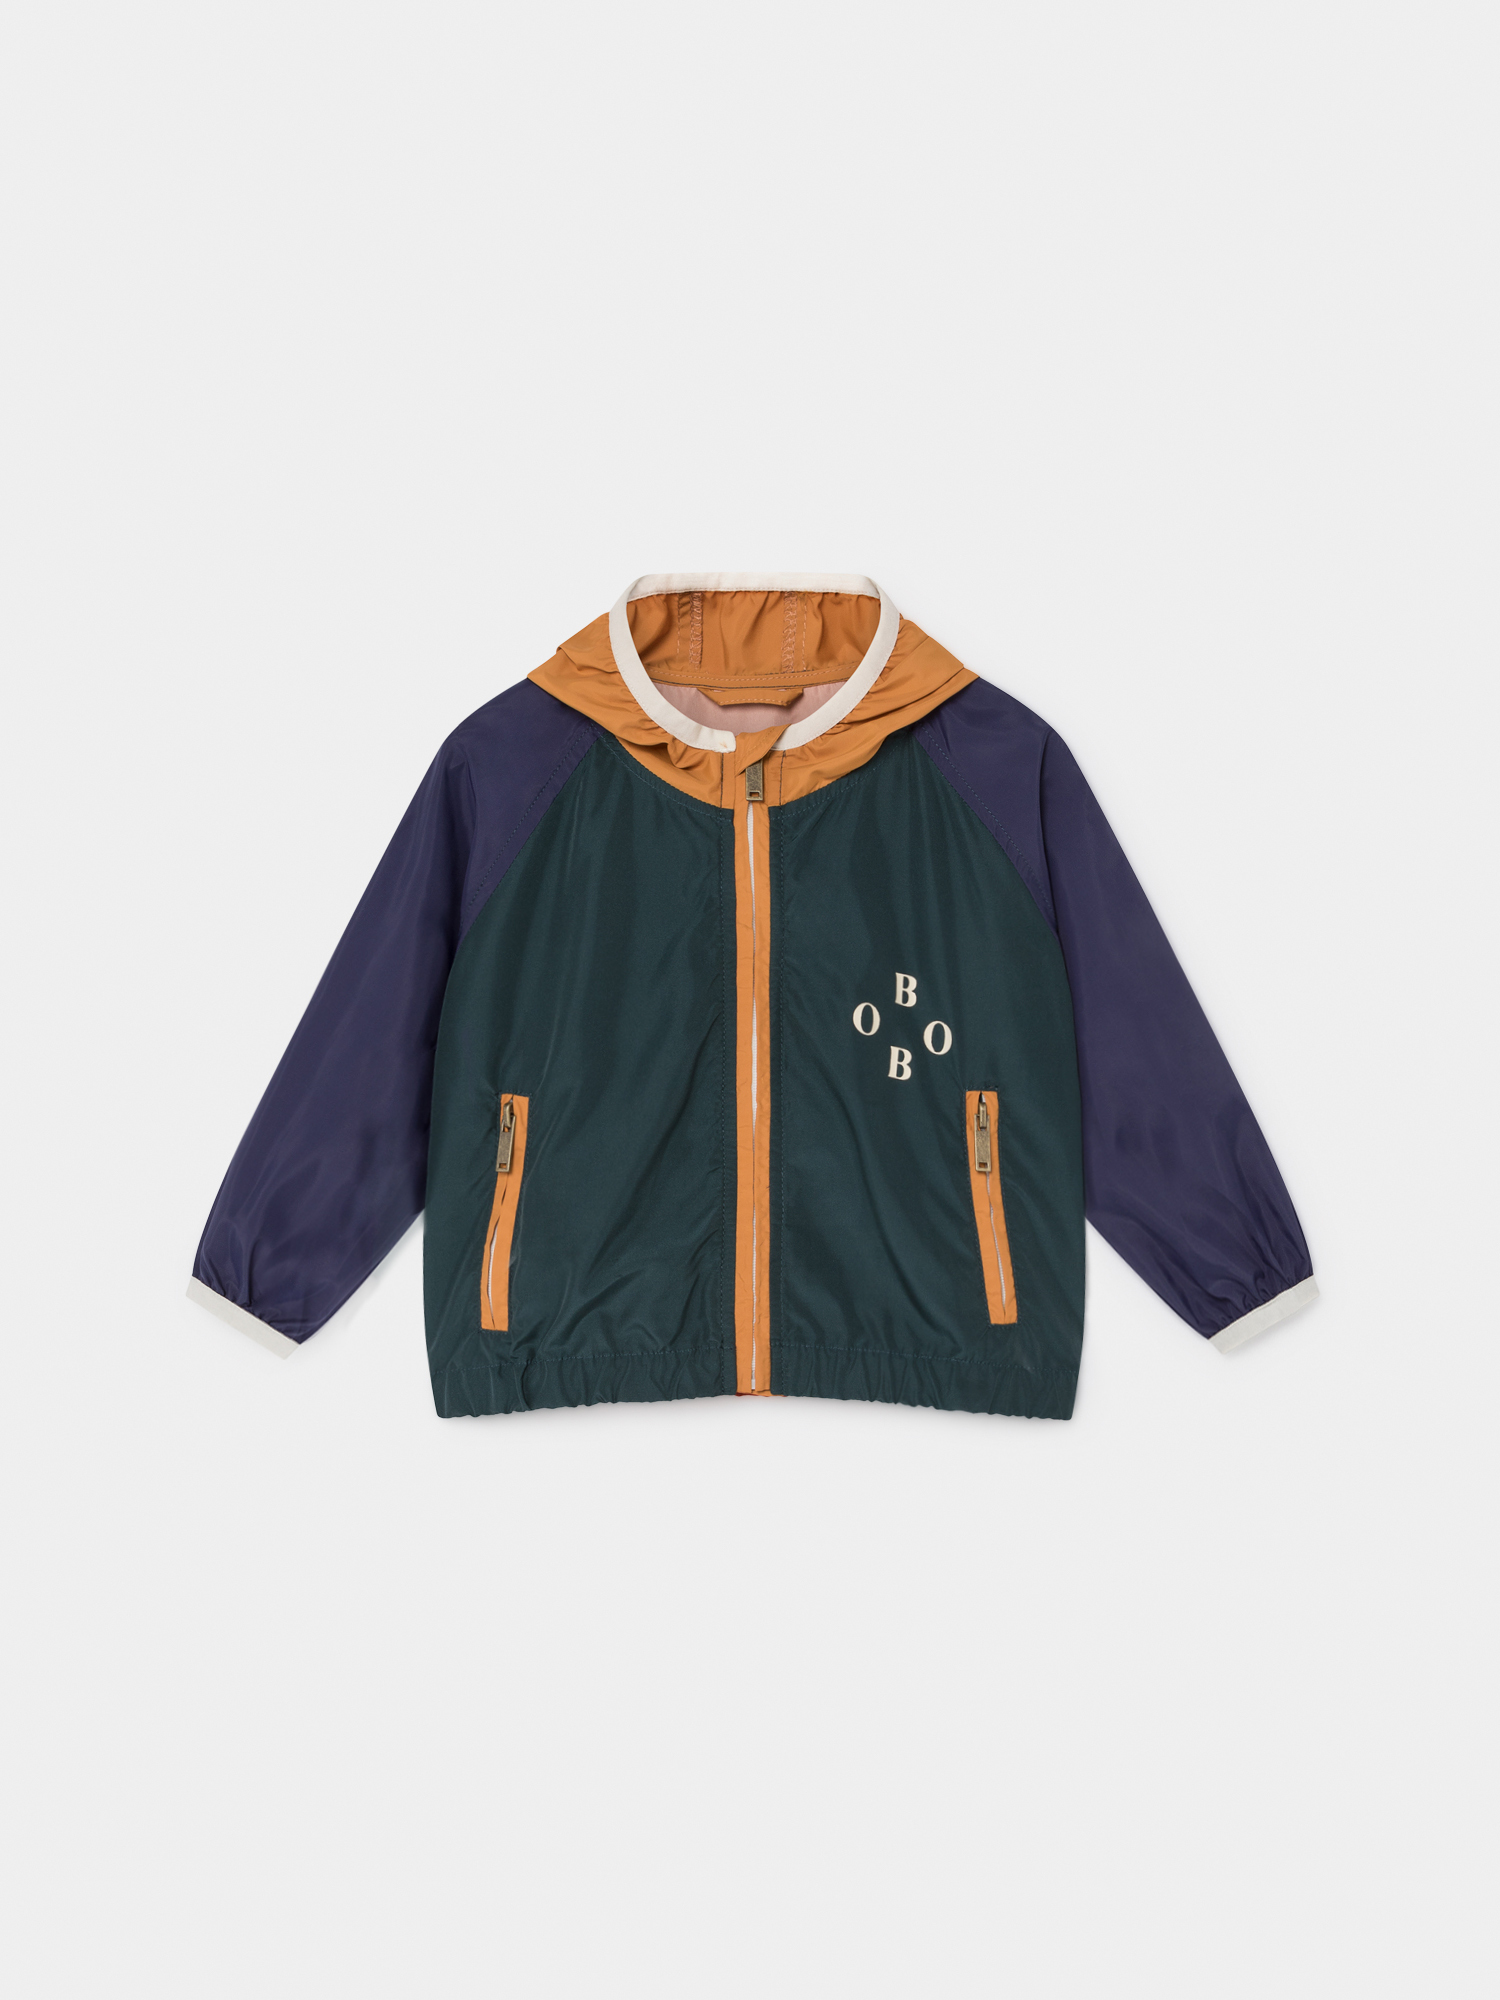 《BOBO CHOSES 2019AW》BOBO Multicolor windstopper / 12-36M